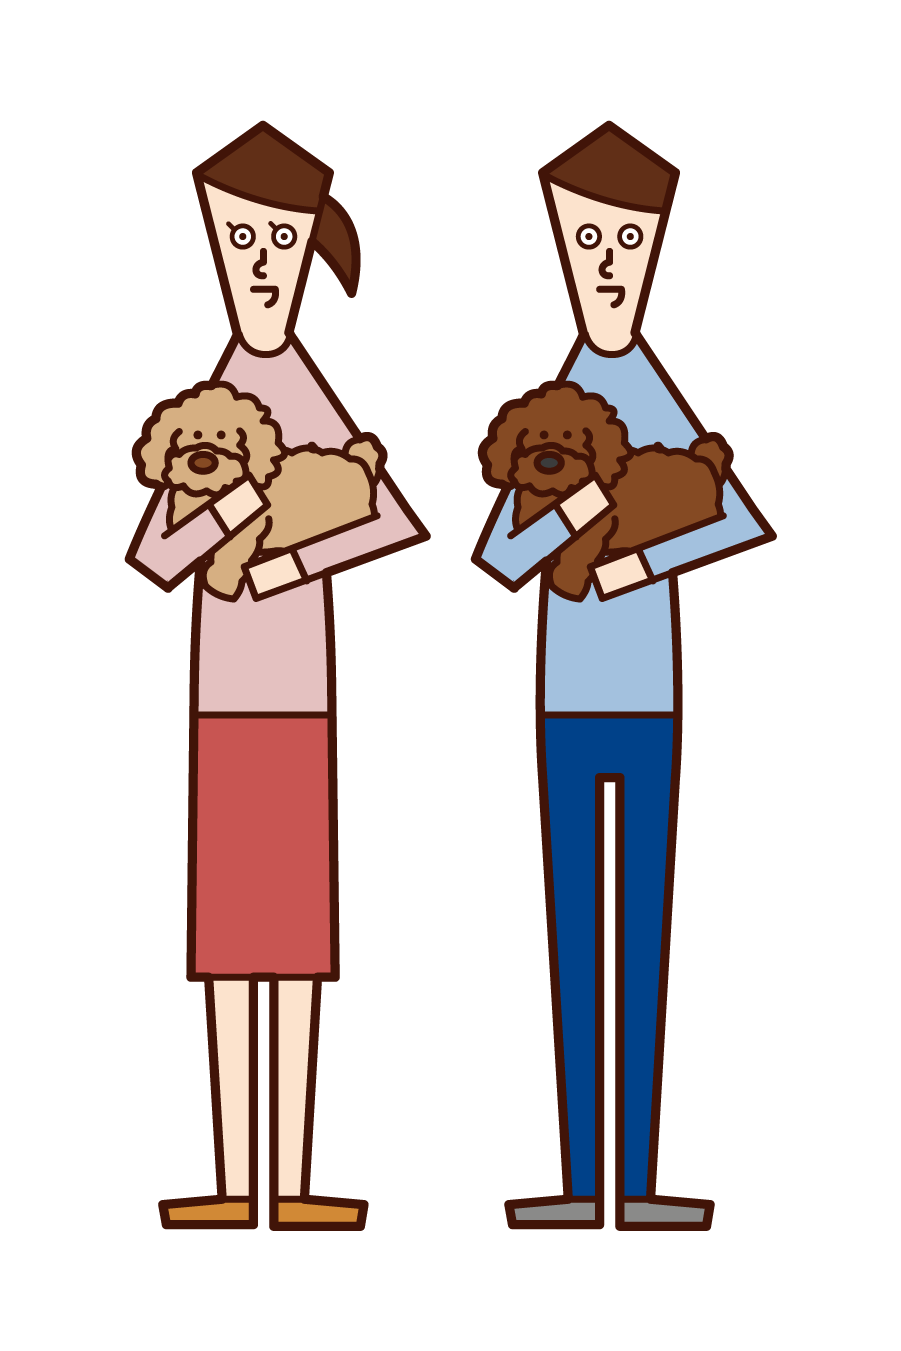 Illustration of a couple with a dog